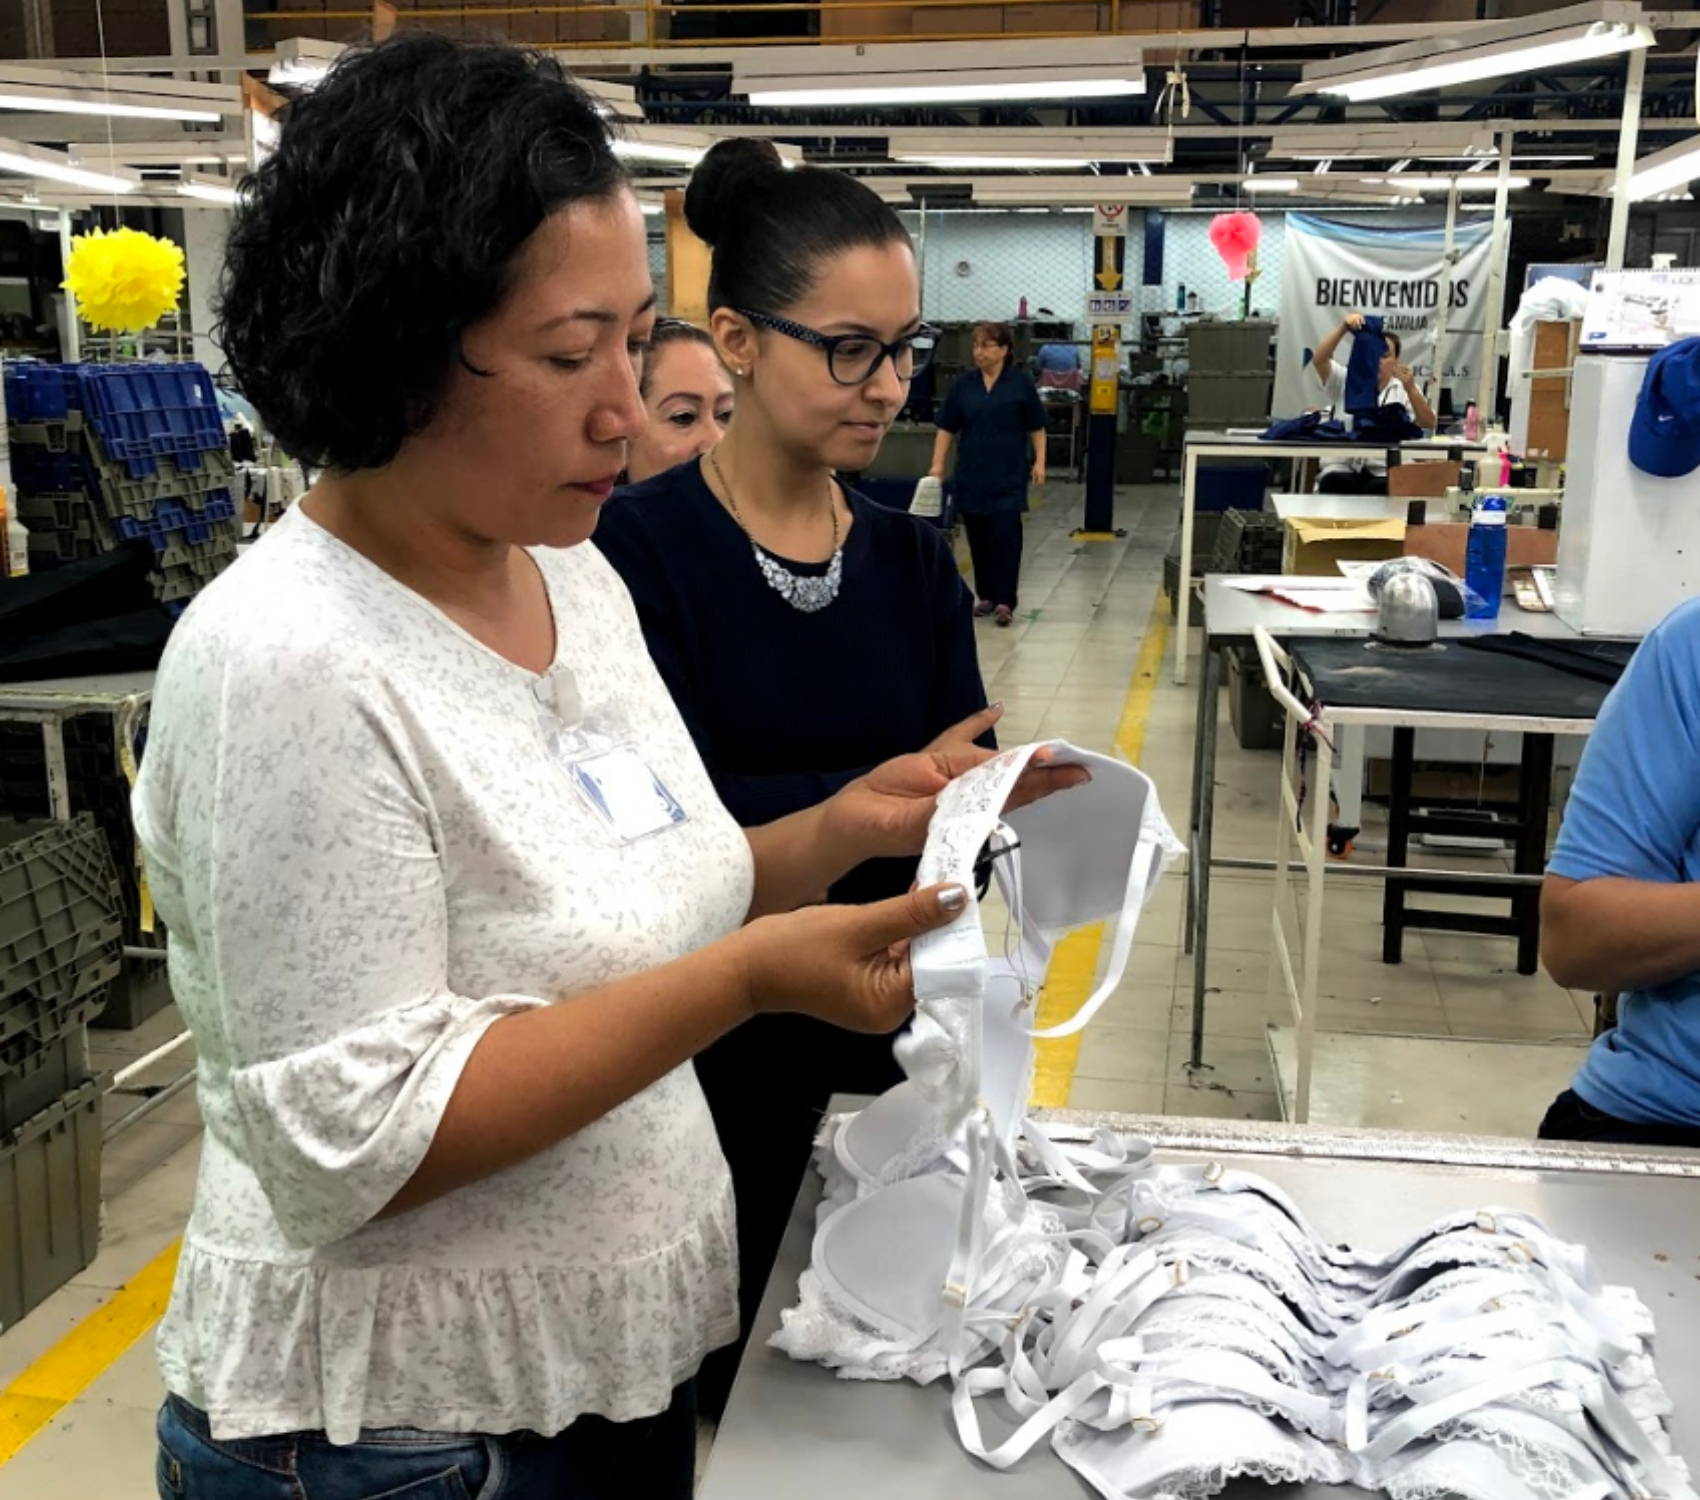 Pepper bras being ethically created in Colombia manufacturing facility